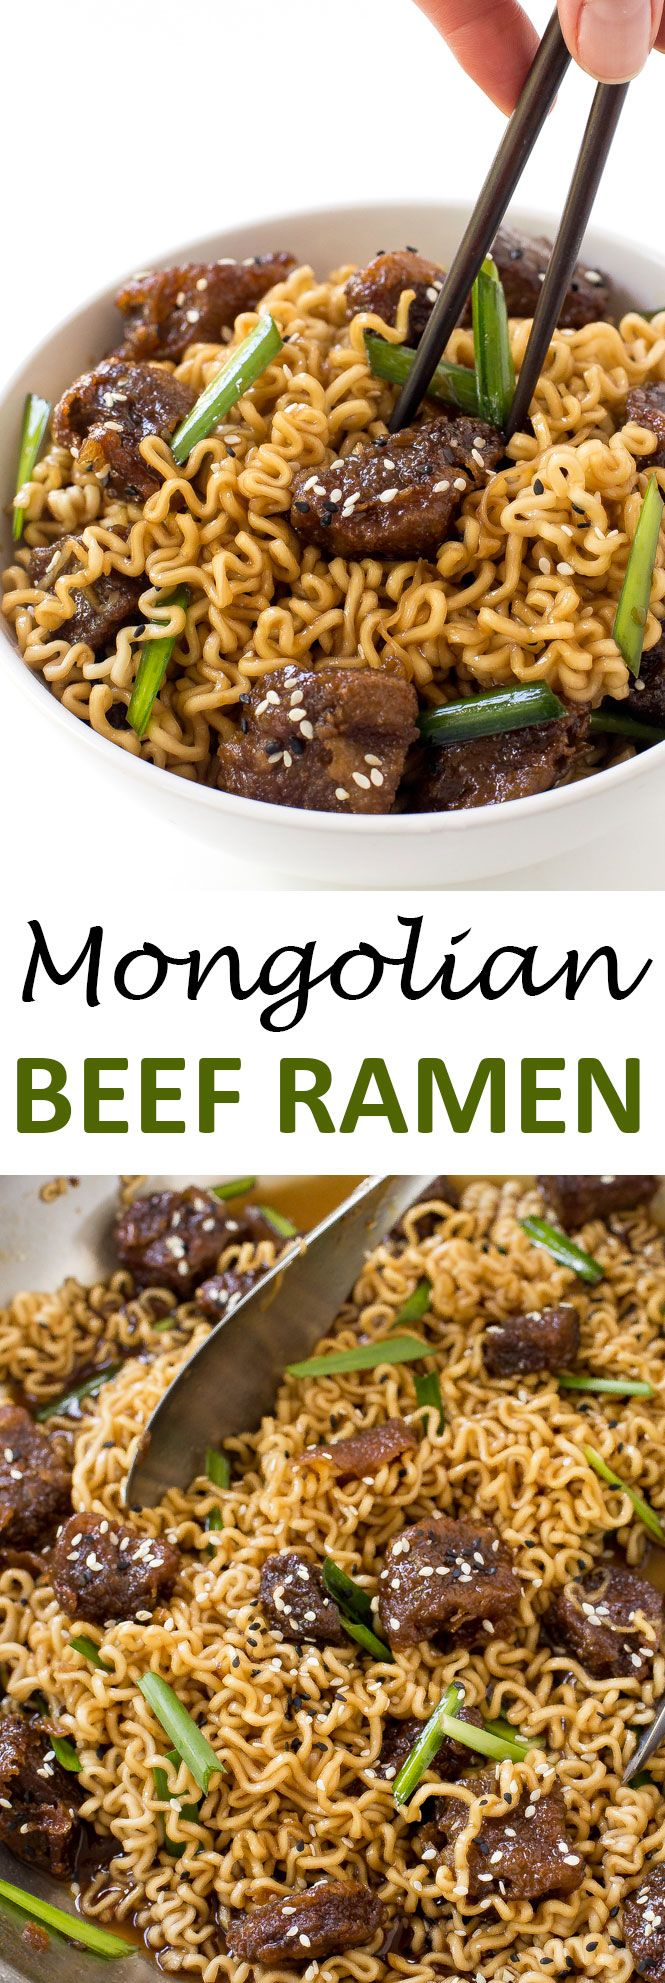 Mongolian Beef Ramen. Just like PF Chang's Mongolian Beef but with Ramen…